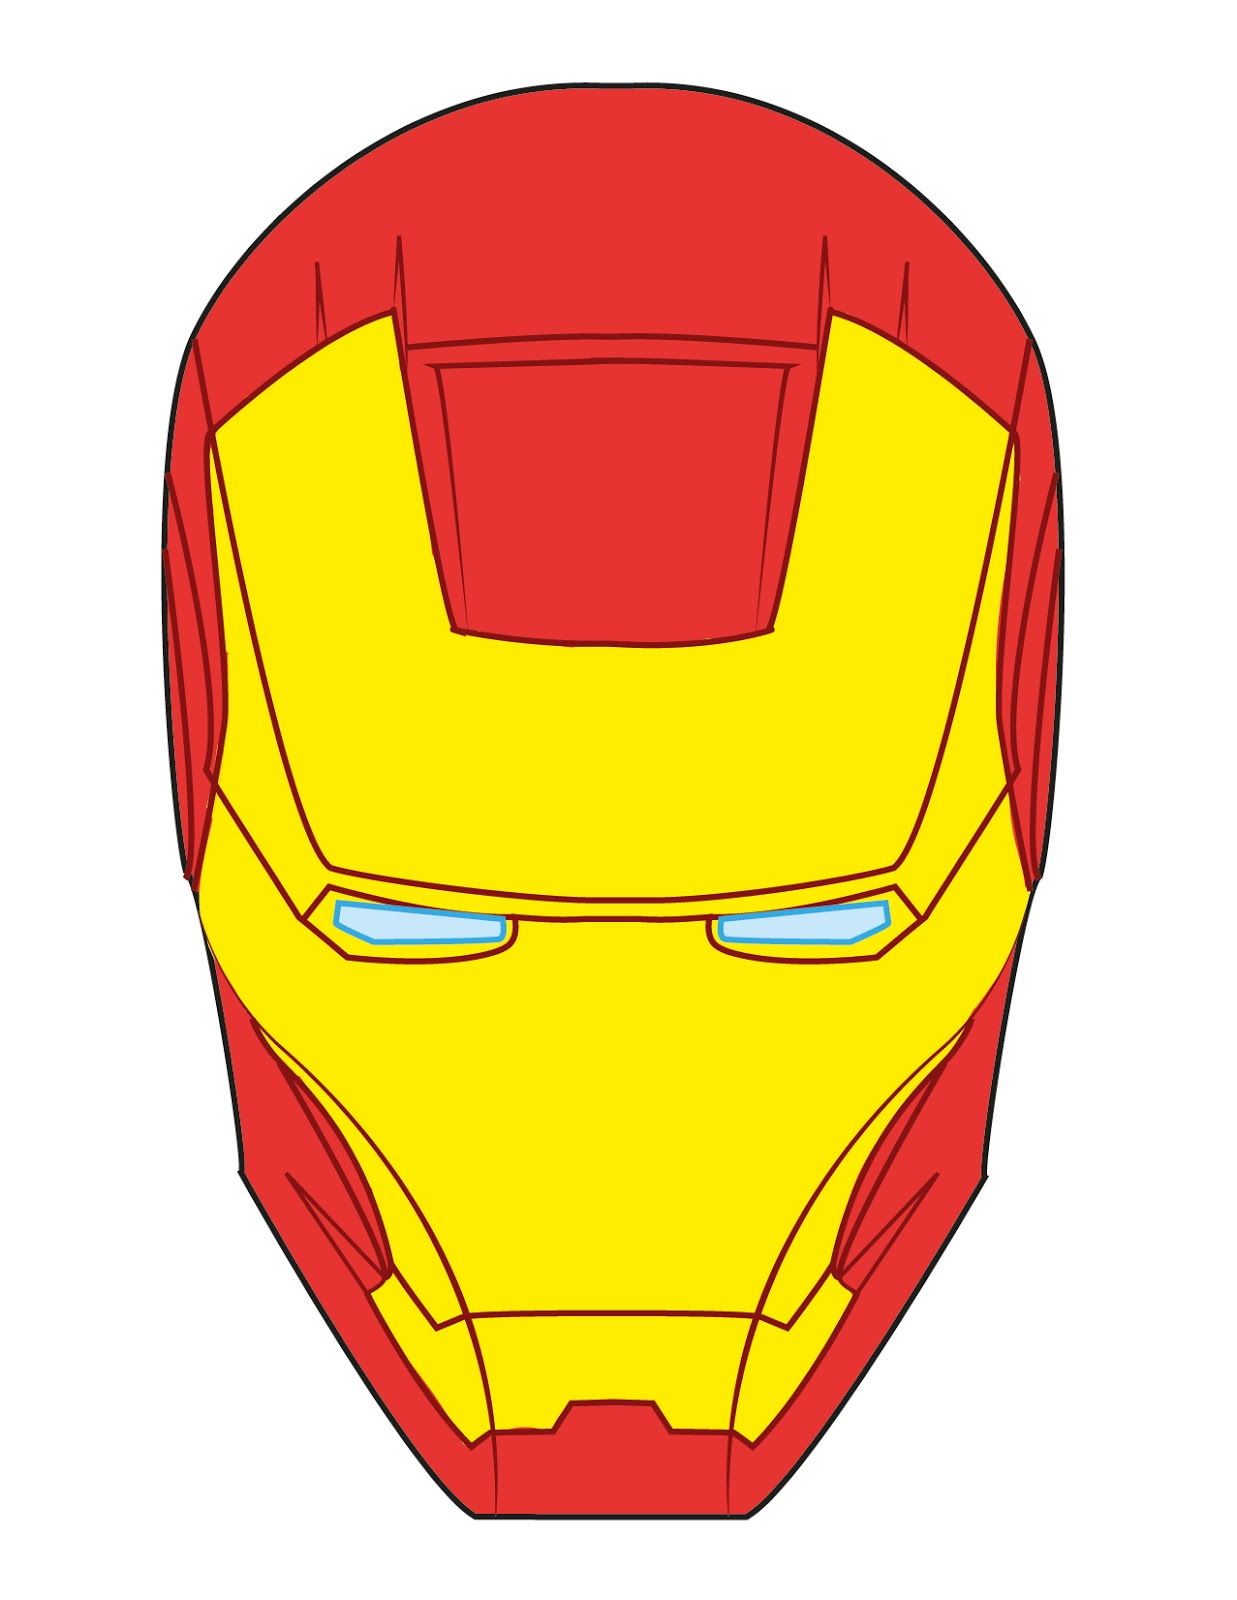 Mask clipart iron man Iron For Template man man